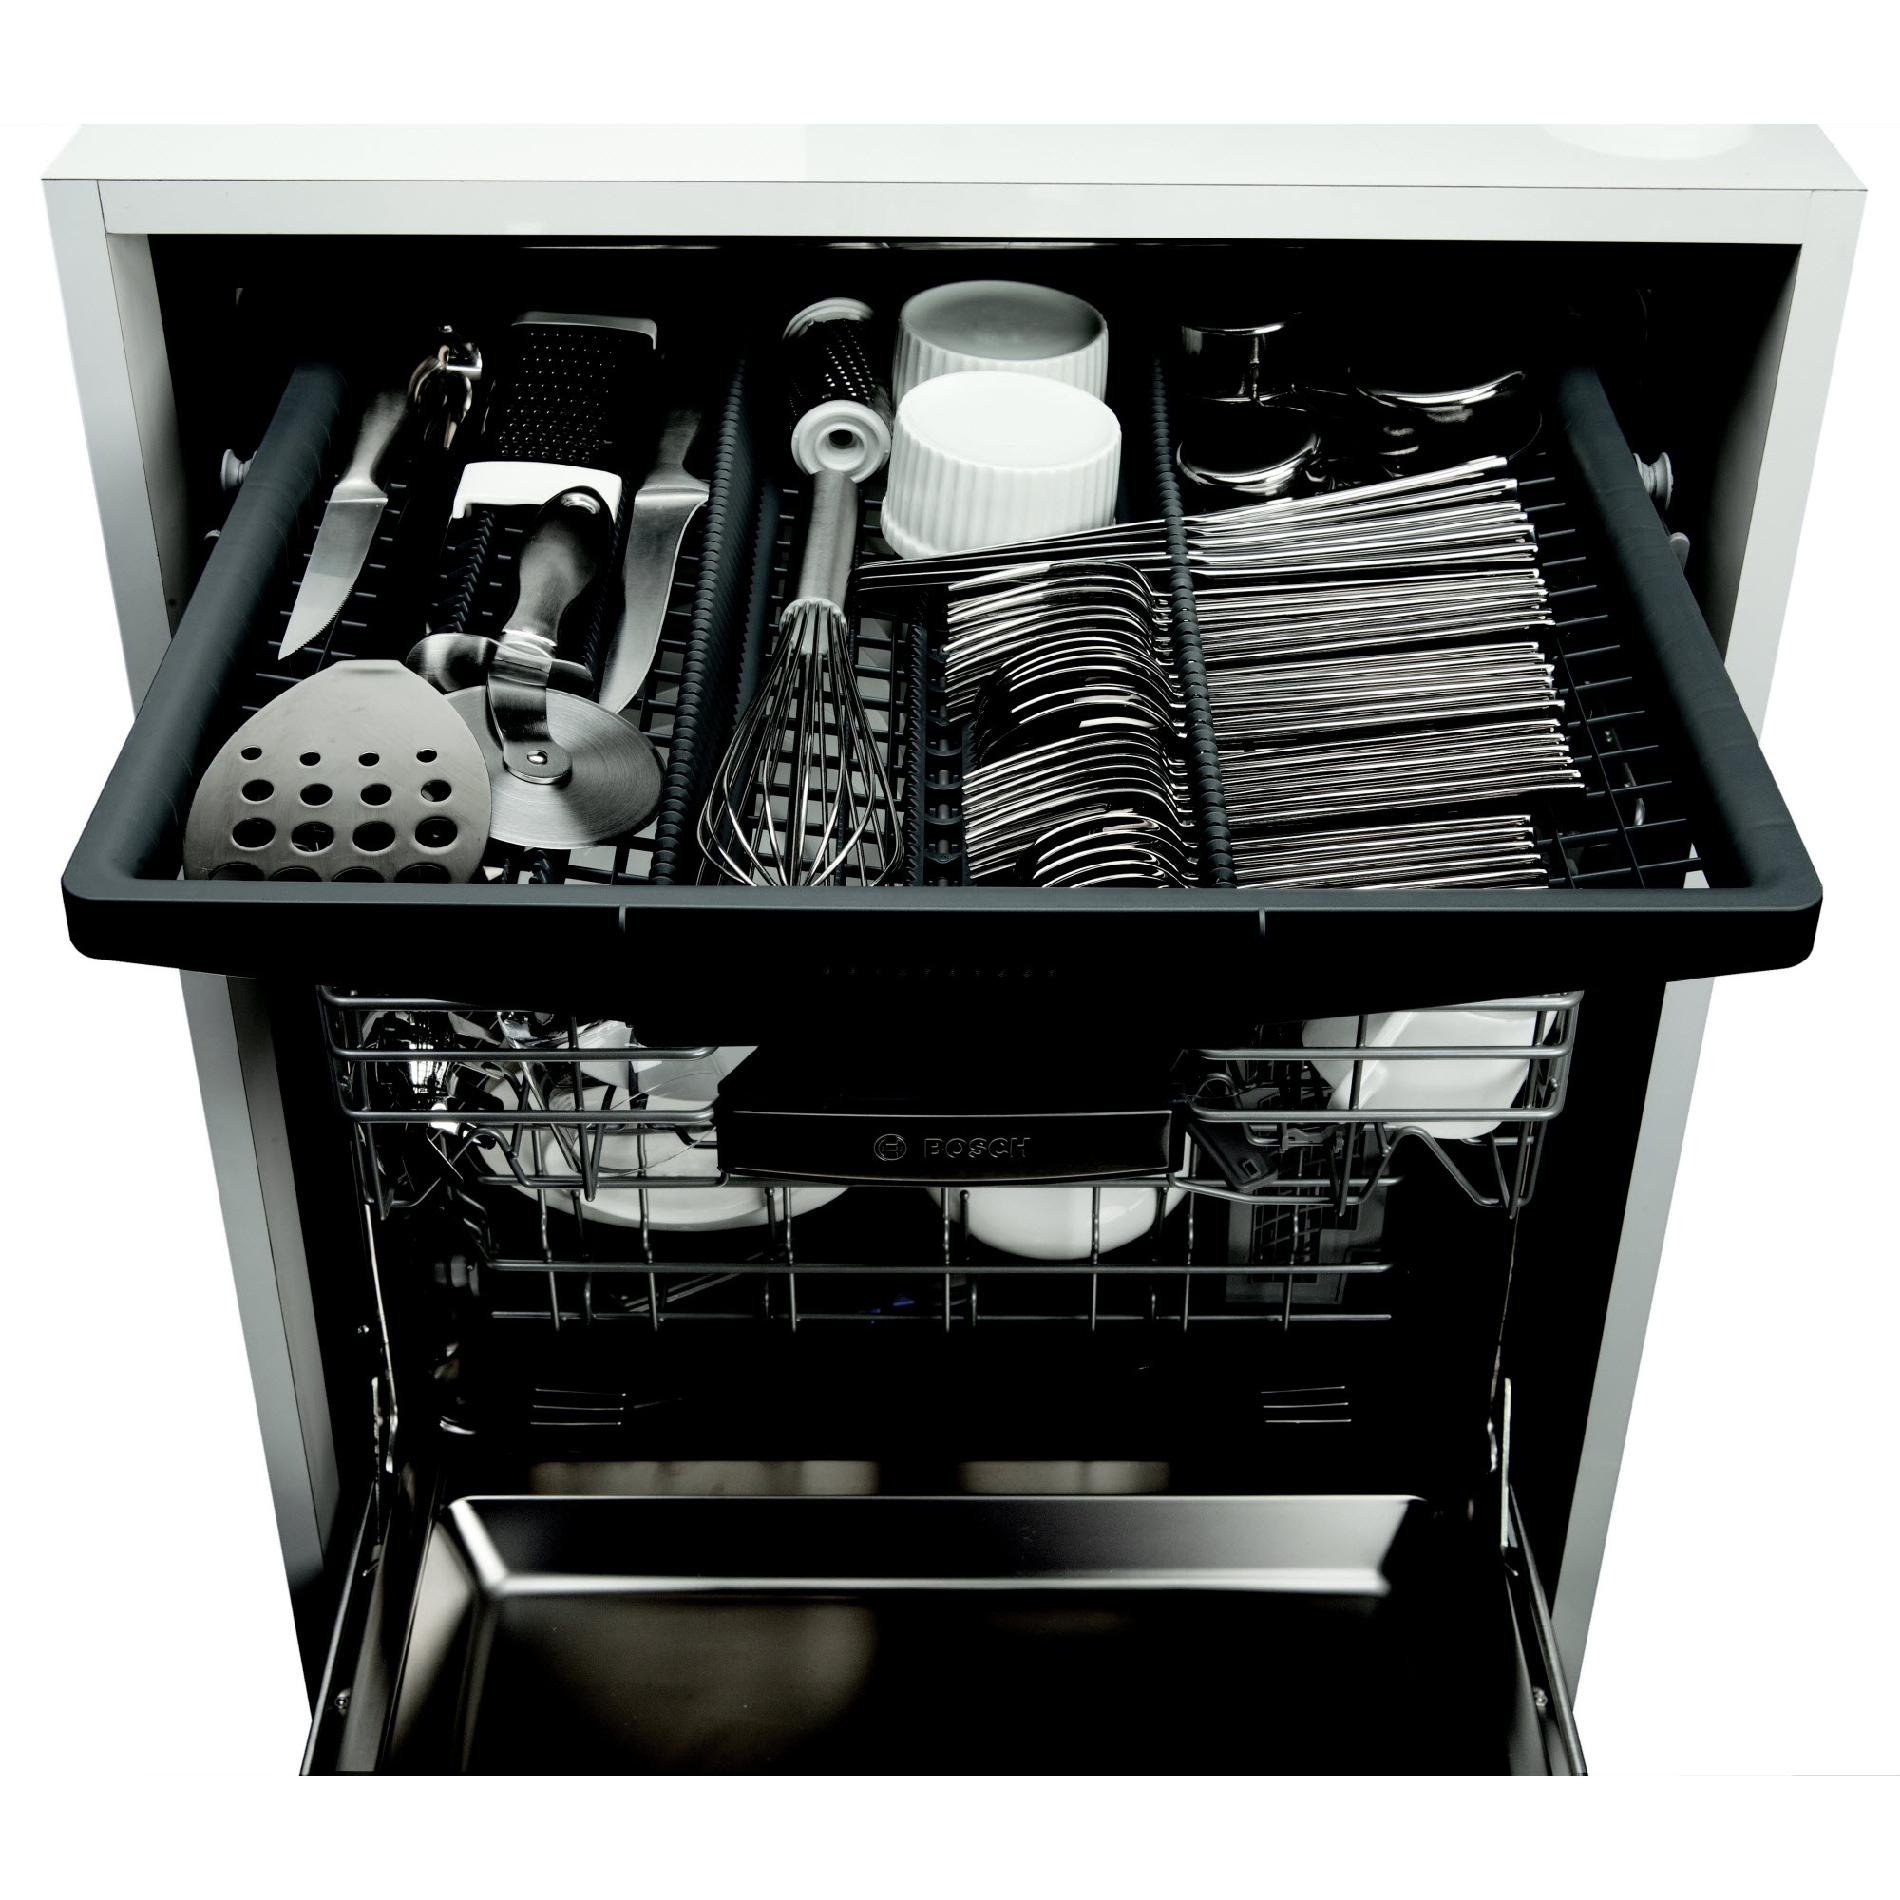 "Bosch SHX65T55UC 24"" 500 Series Built-In Dishwasher - Stainless Steel"